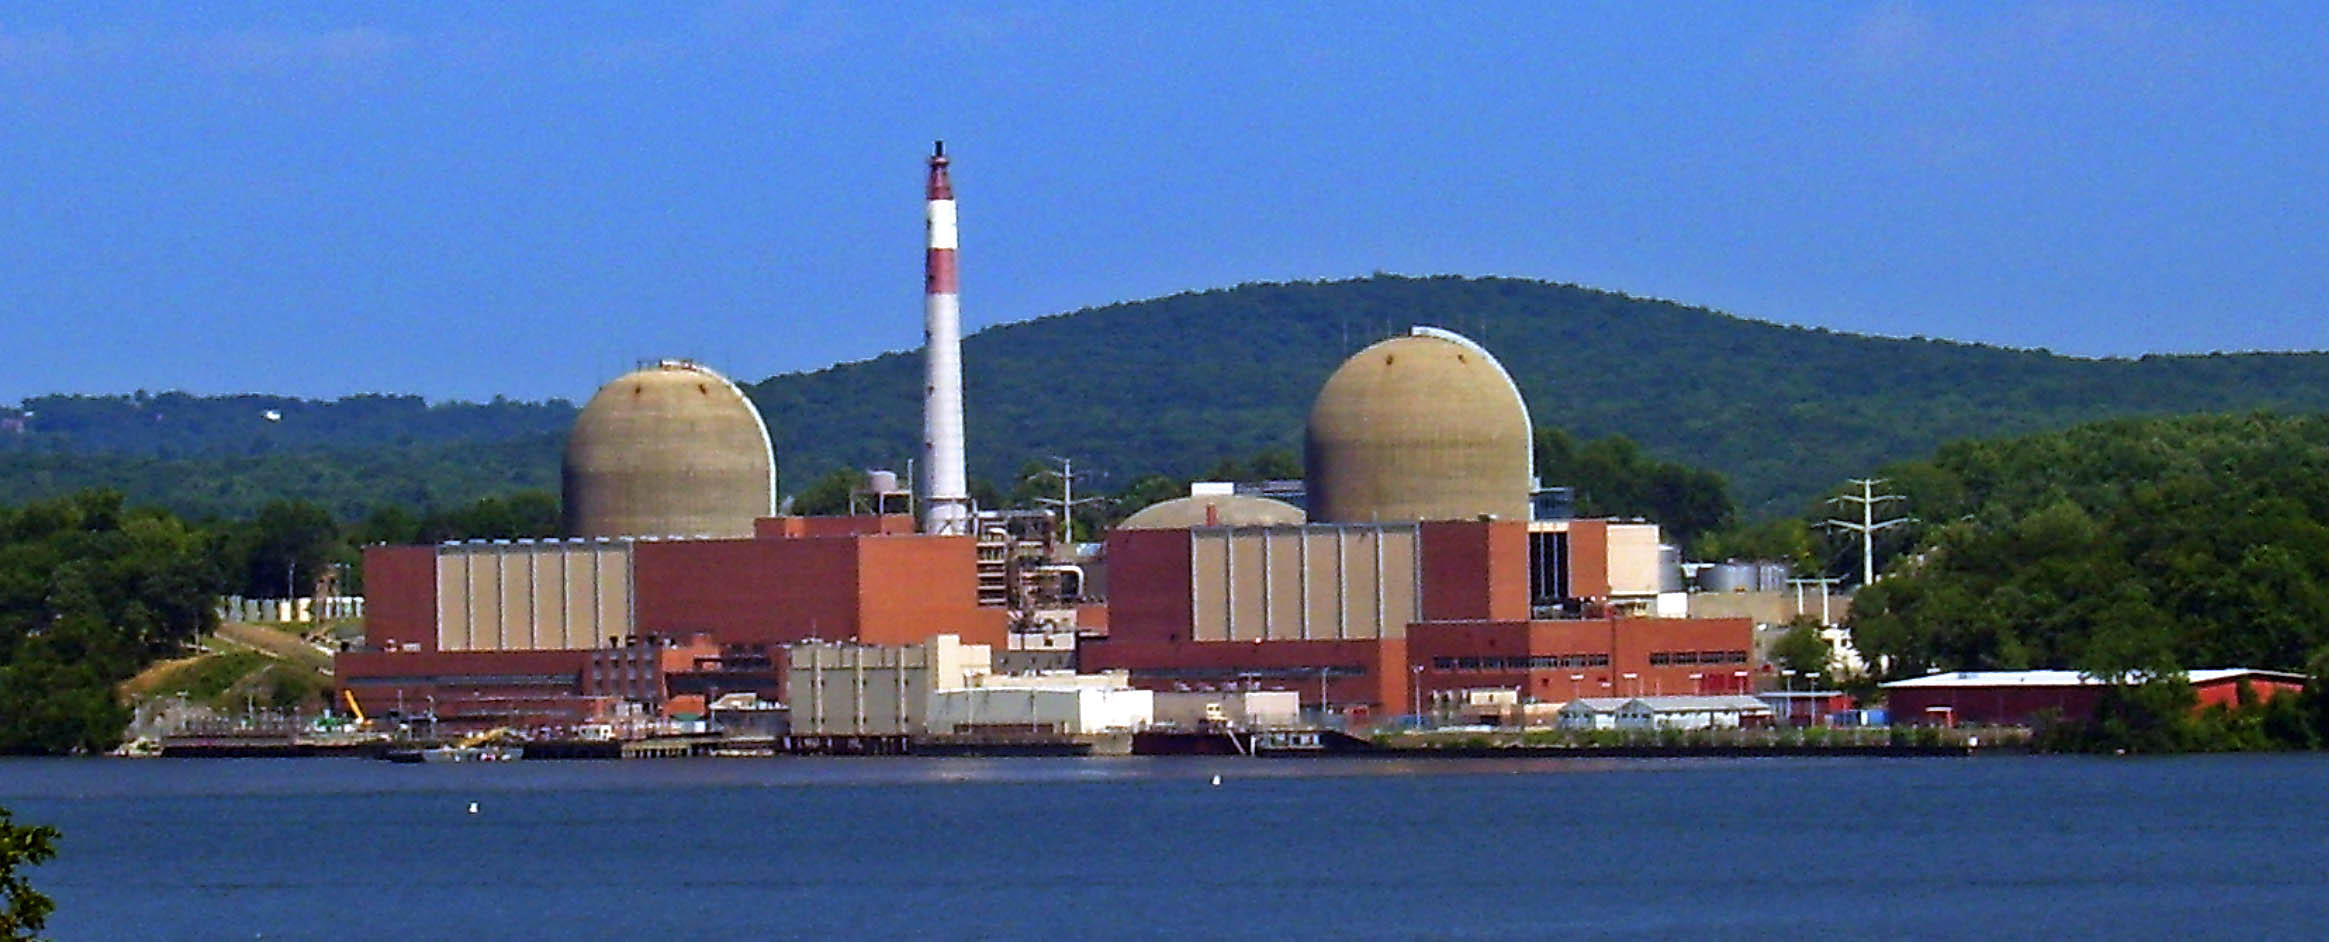 NY Nuclear Plant Resumes Service After Scheduled Outage | WAMC